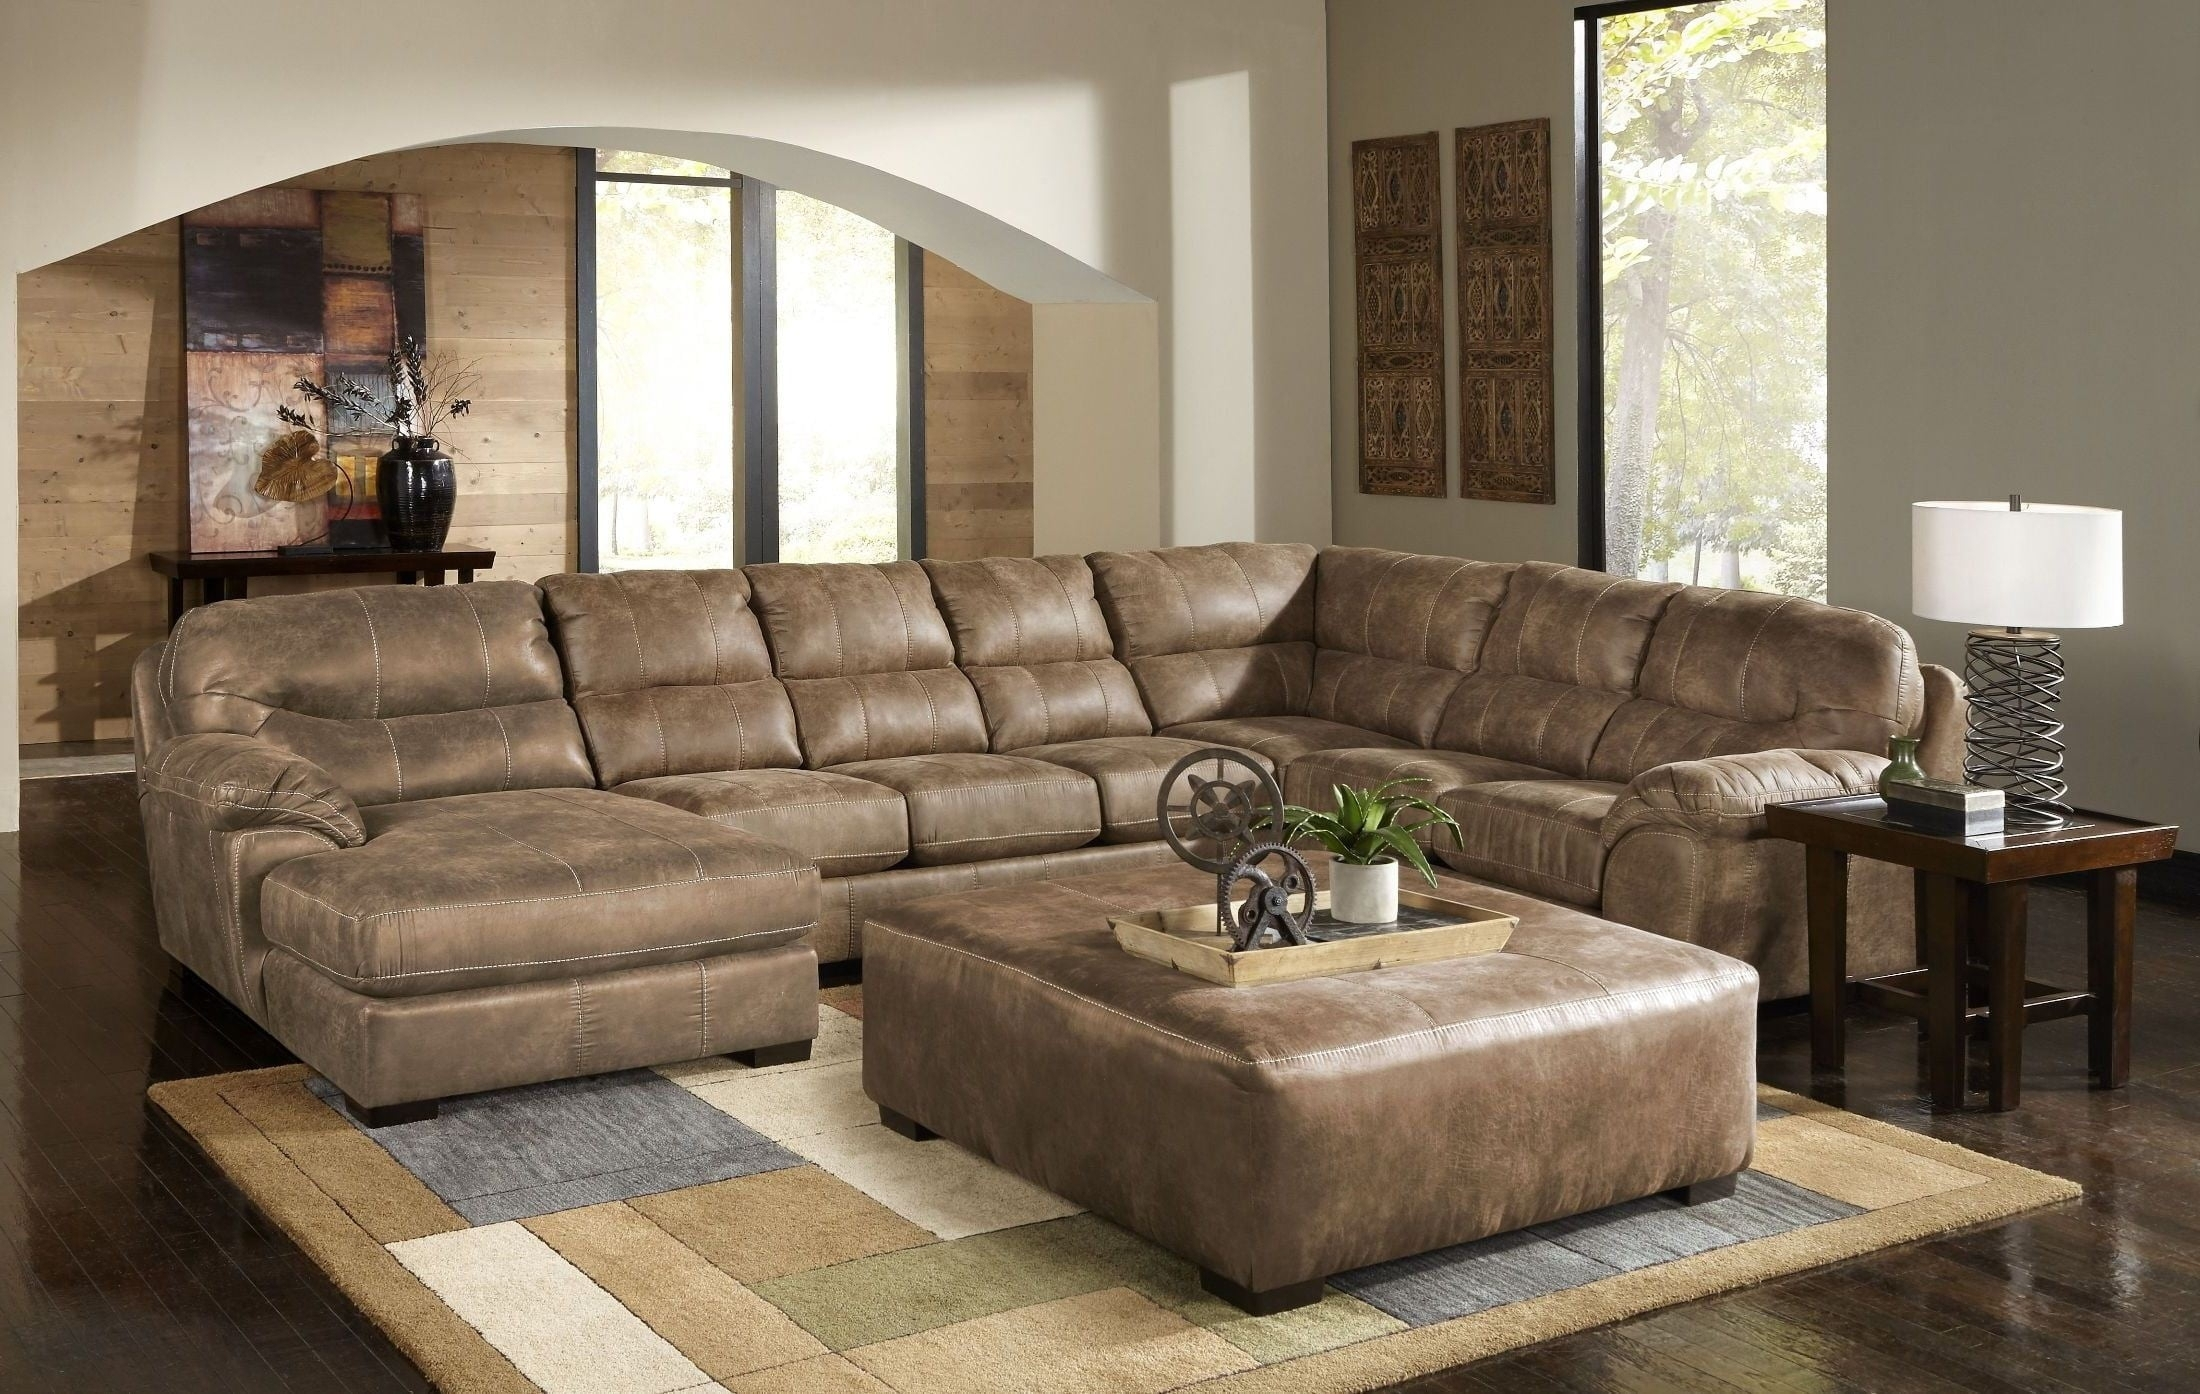 Grant Silt Laf Chaise Sectional, 4453-75-122749302749, Jackson throughout Avery 2 Piece Sectionals With Raf Armless Chaise (Image 16 of 30)